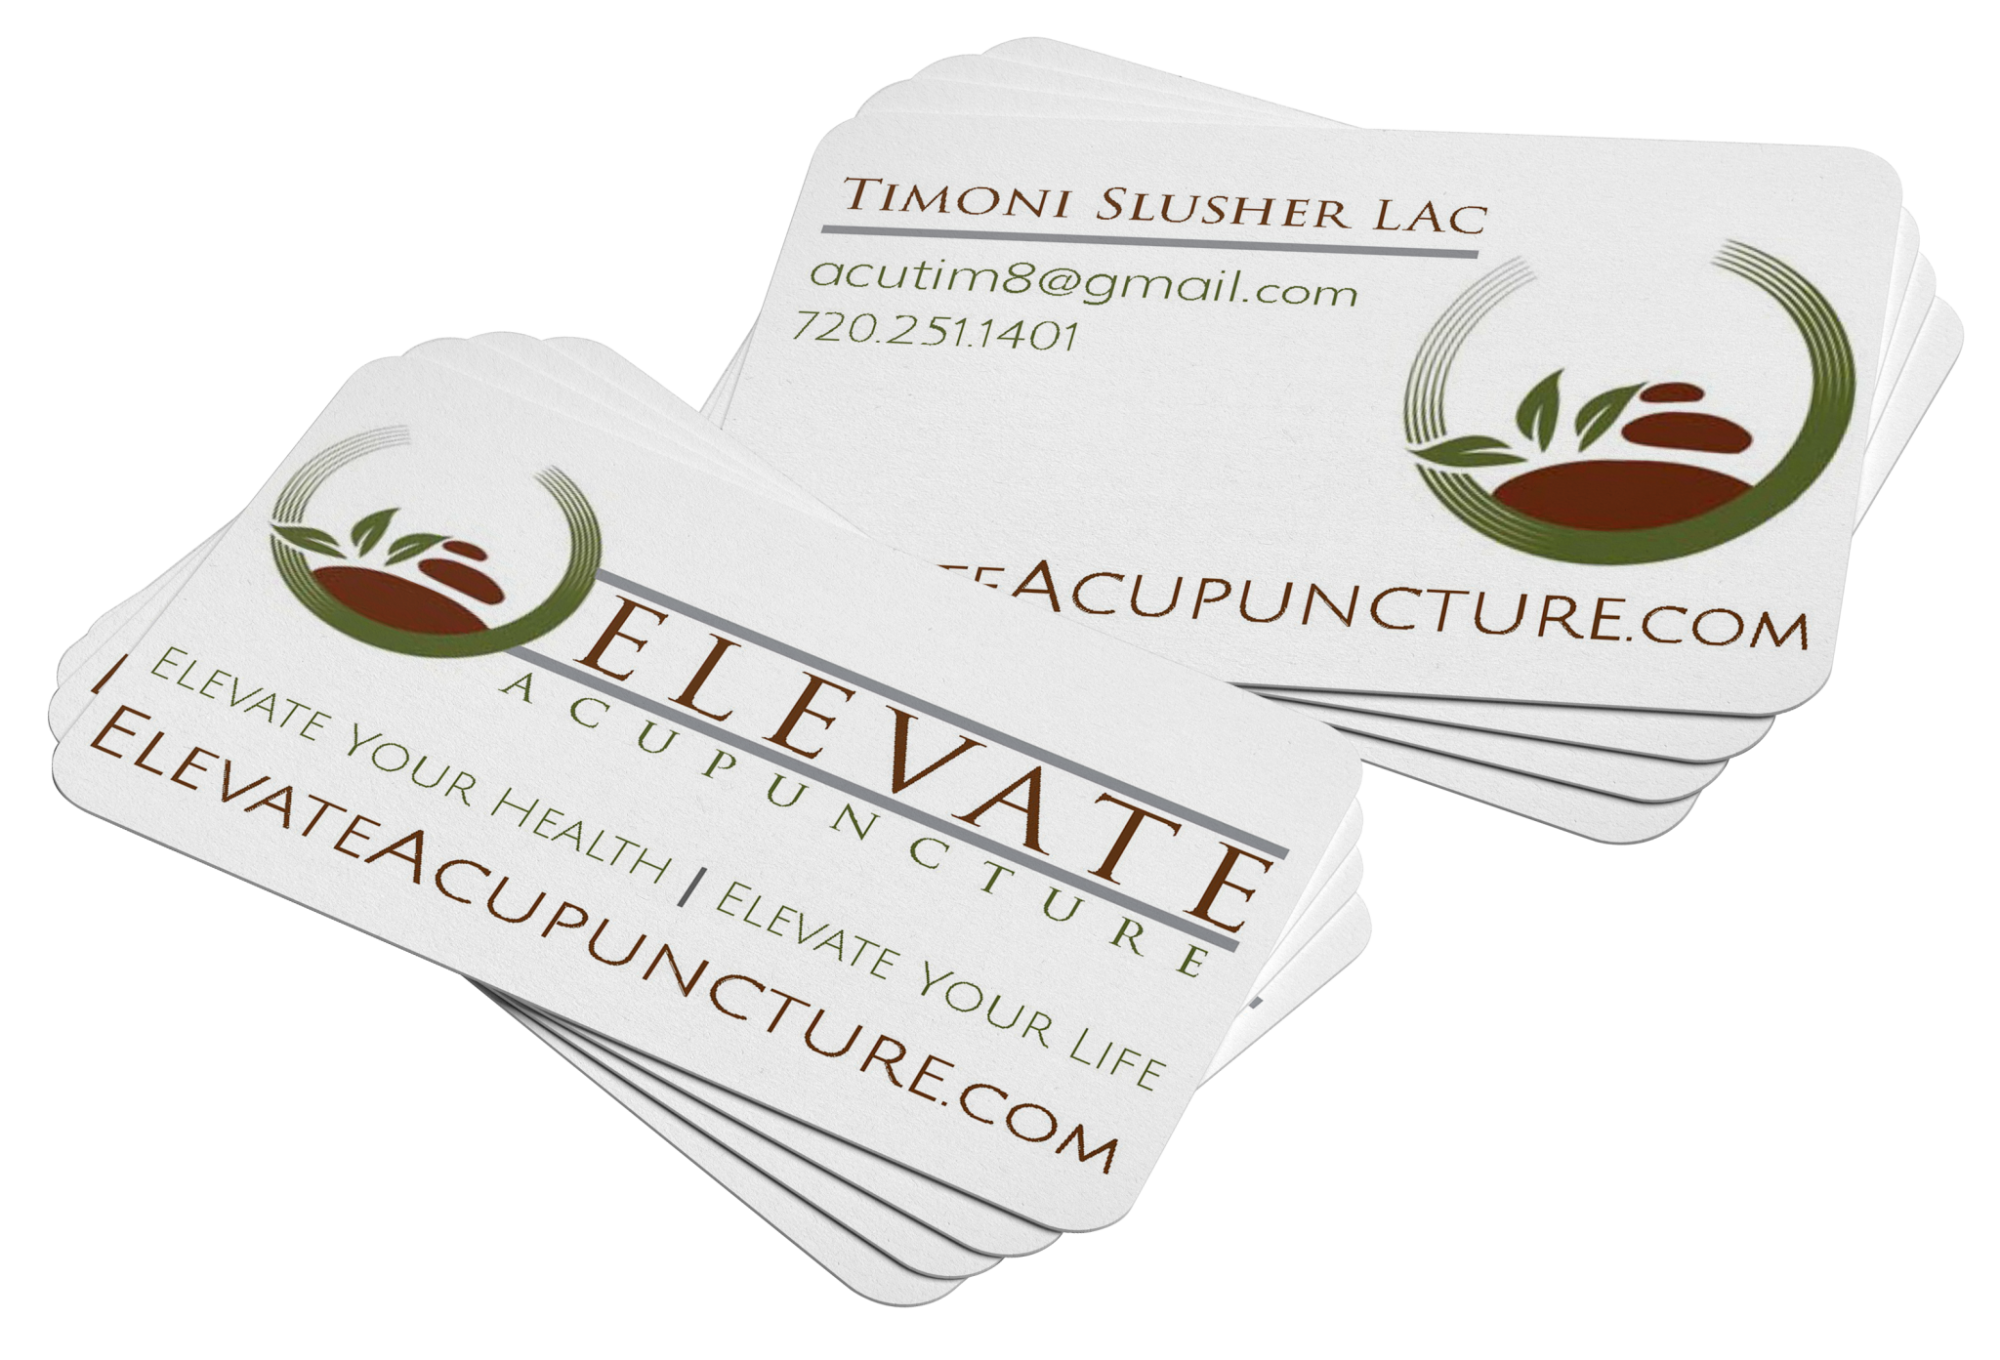 BLOSSOM | Elevate Acupuncture Business Card